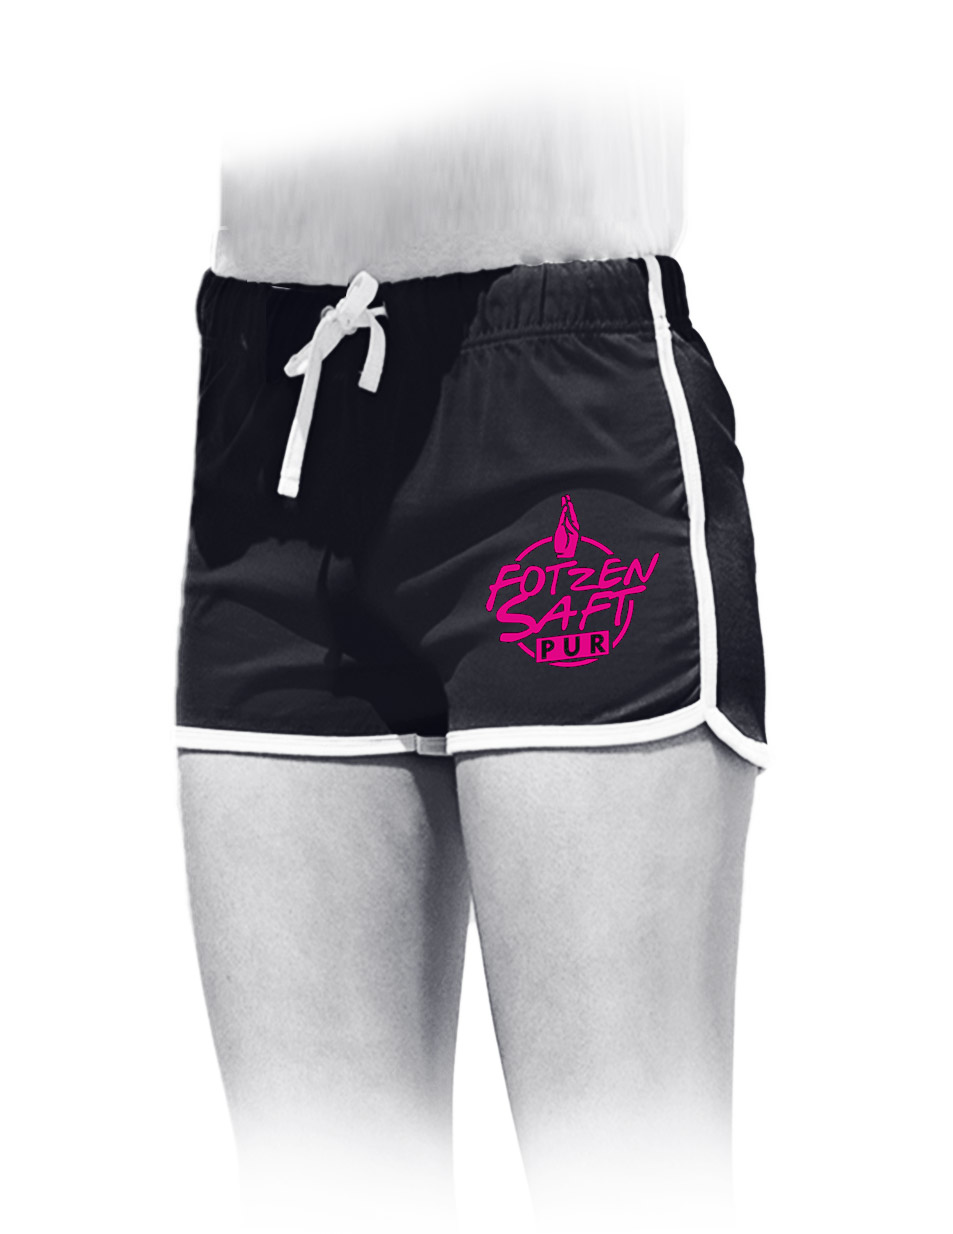 Fotzensaft pur Womens Retro Shorts